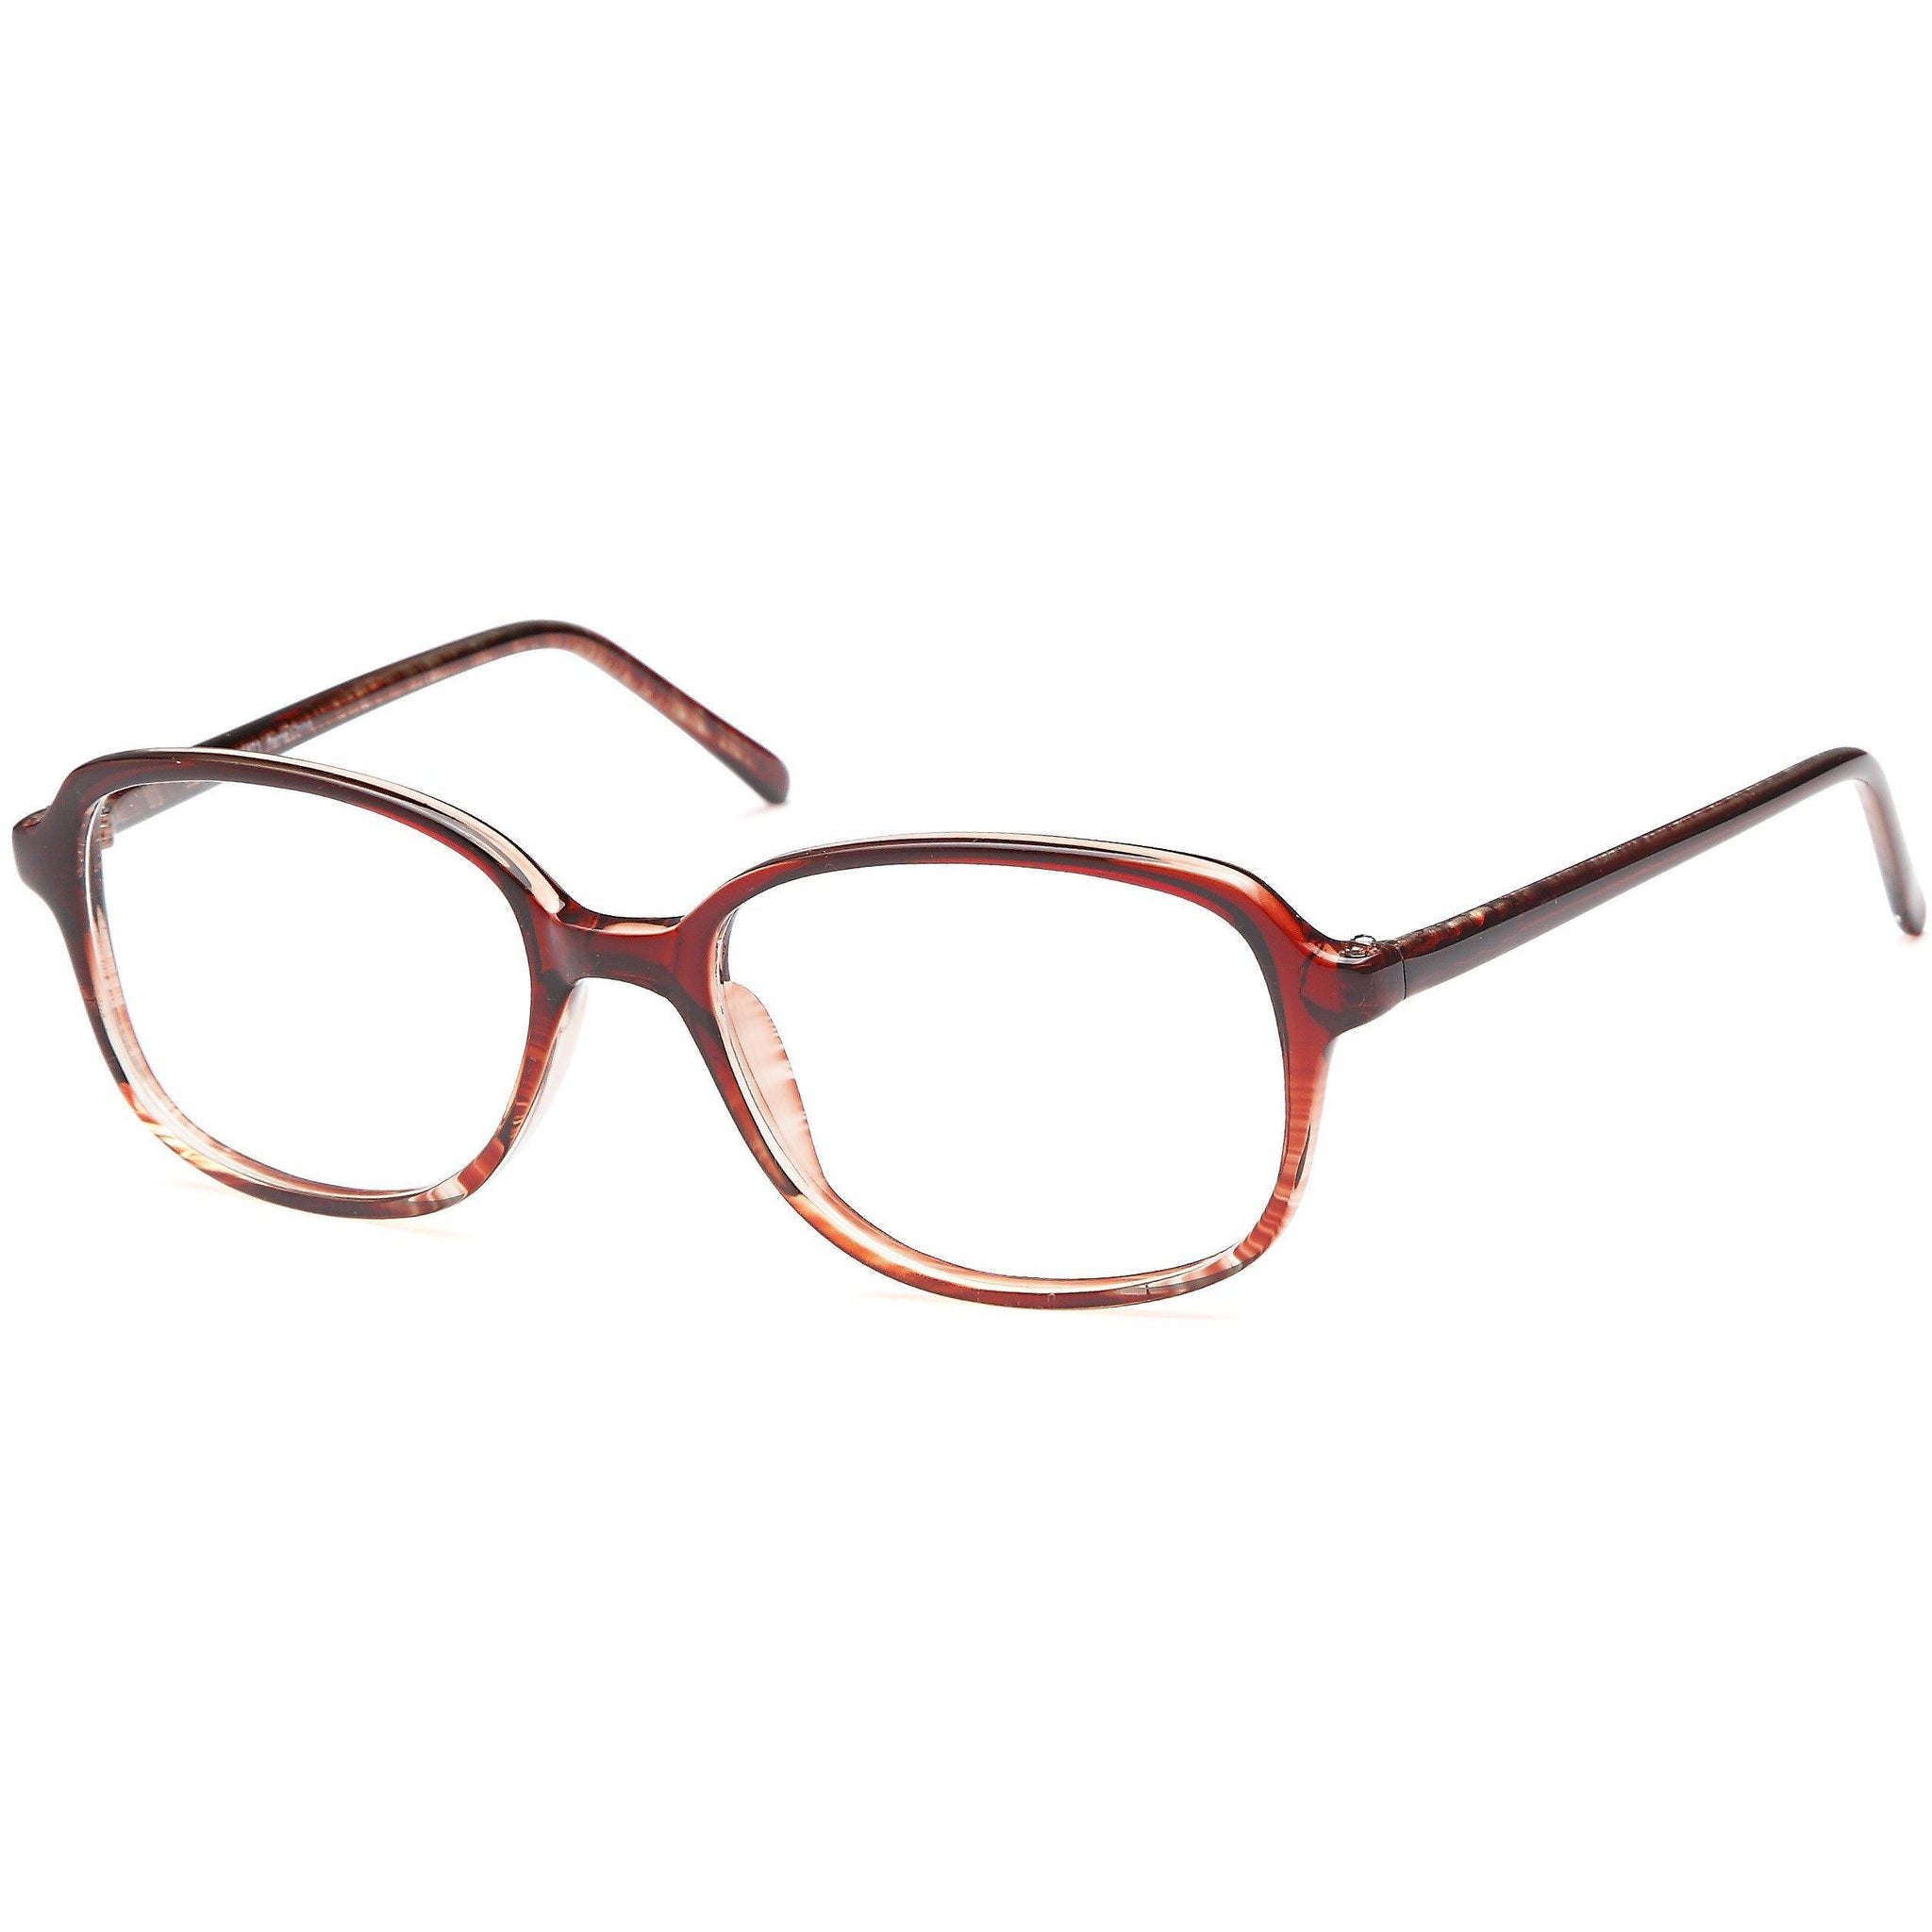 Hoxton by The Square Mile Prescription Eyeglasses Frame